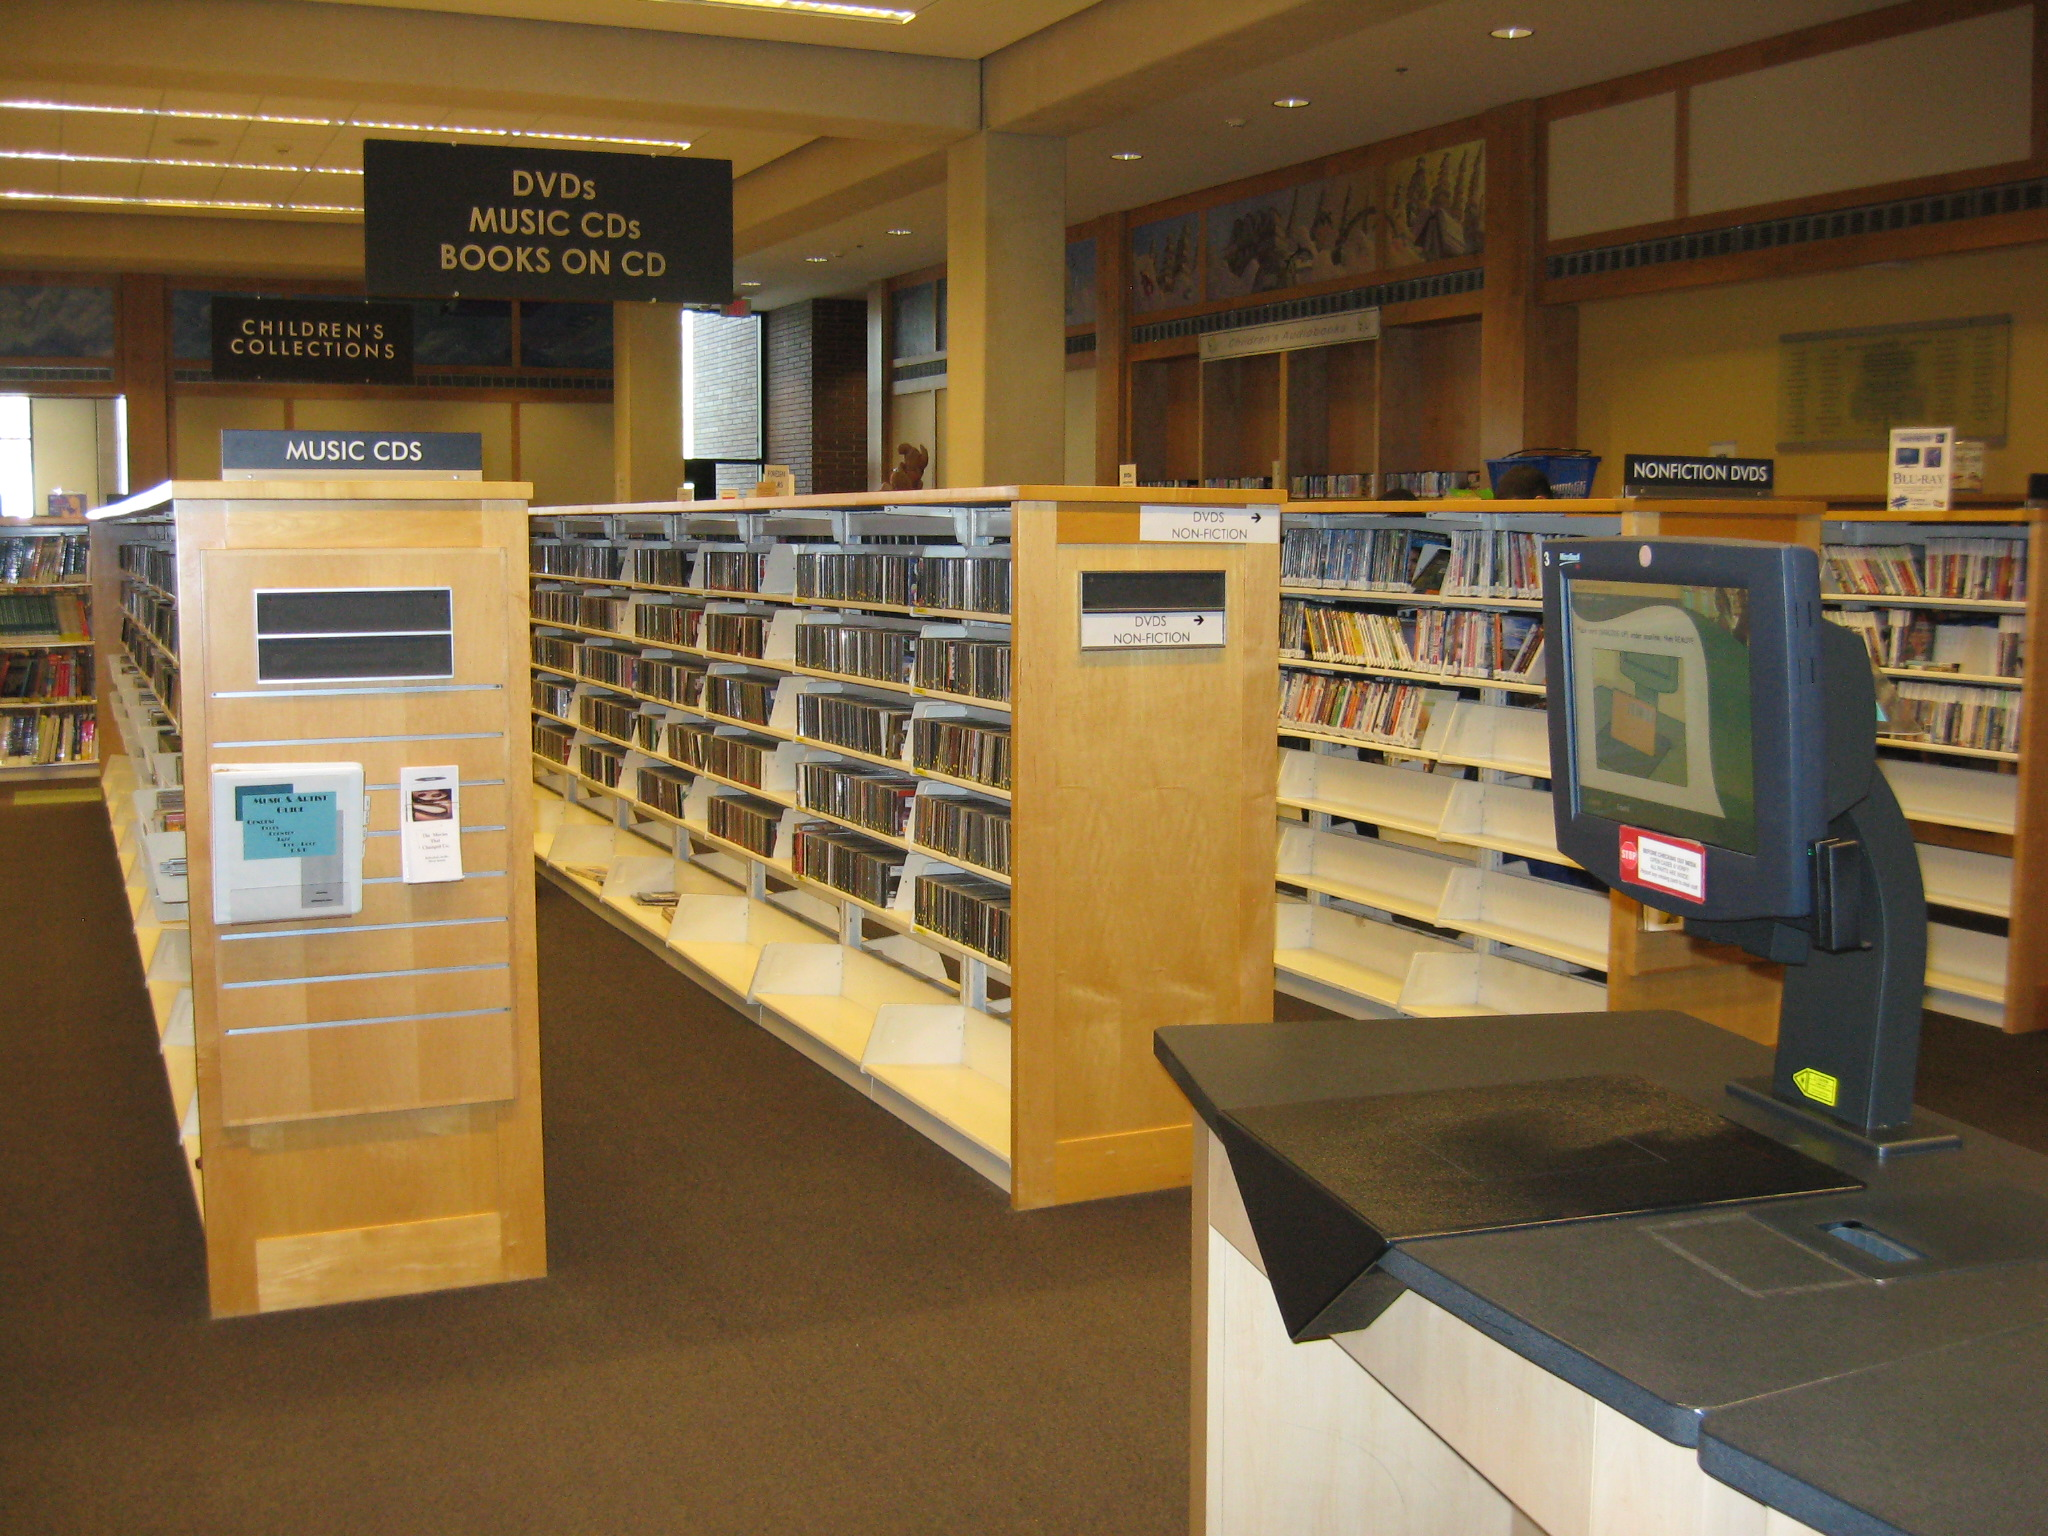 Image of self check-out stations and DVDs and CDs available for check out